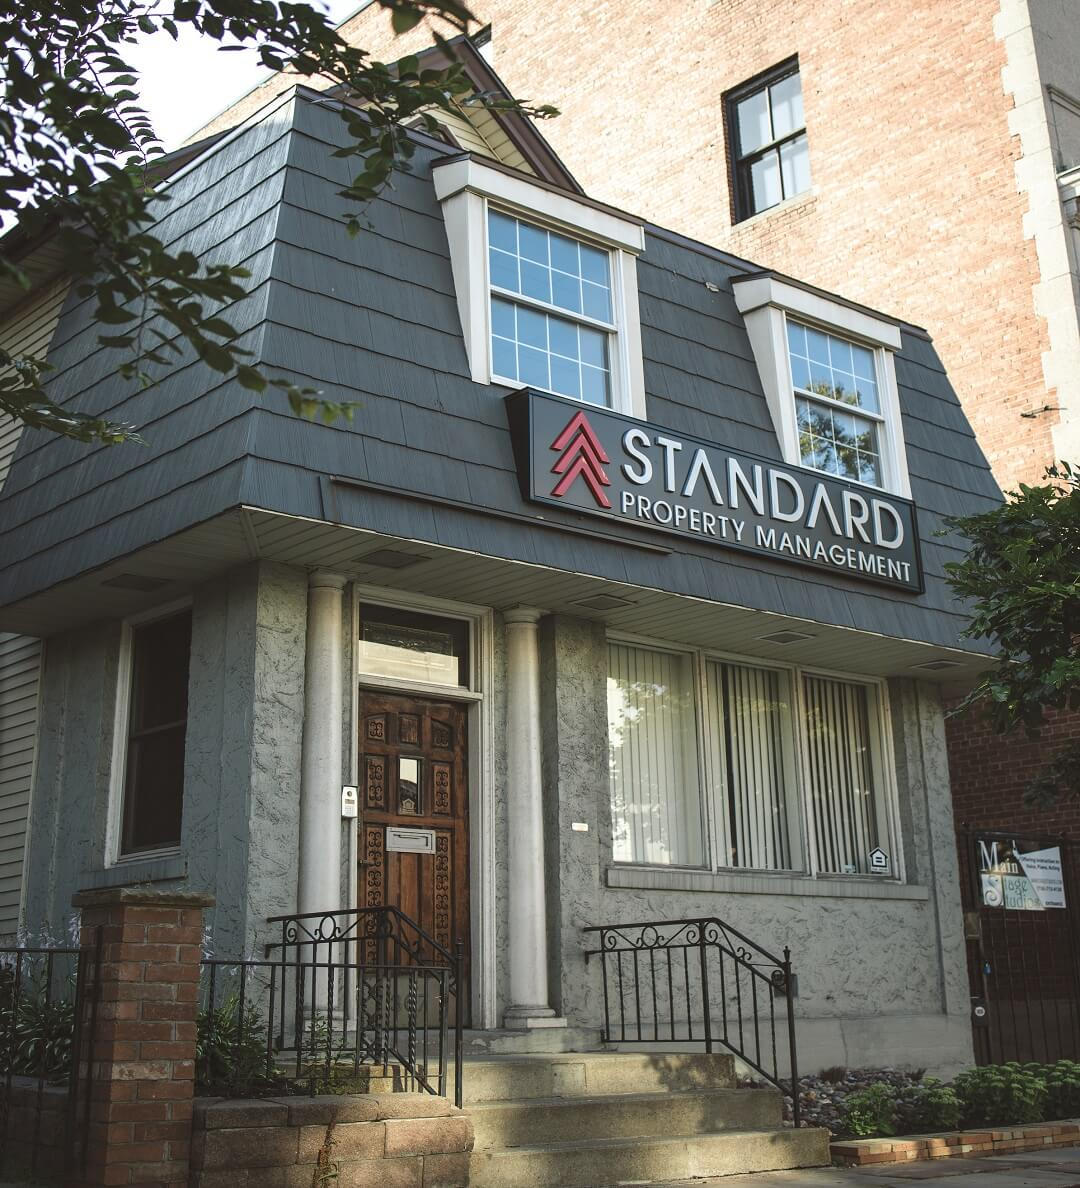 Standard Property Management office at 367 Delaware Ave, Buffalo, NY